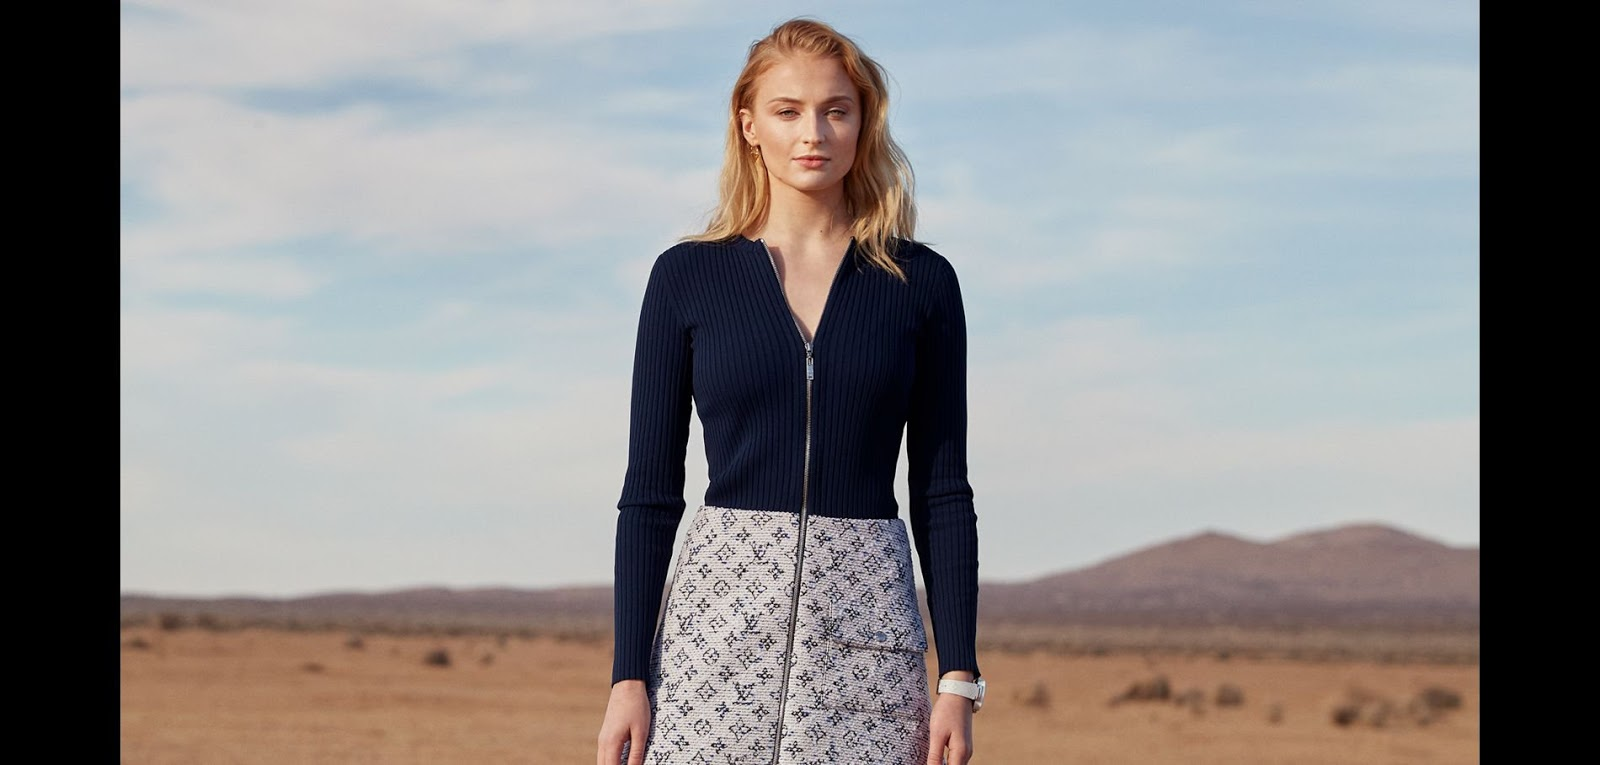 Sophie Turner stars in the new Louis Vuitton campaign